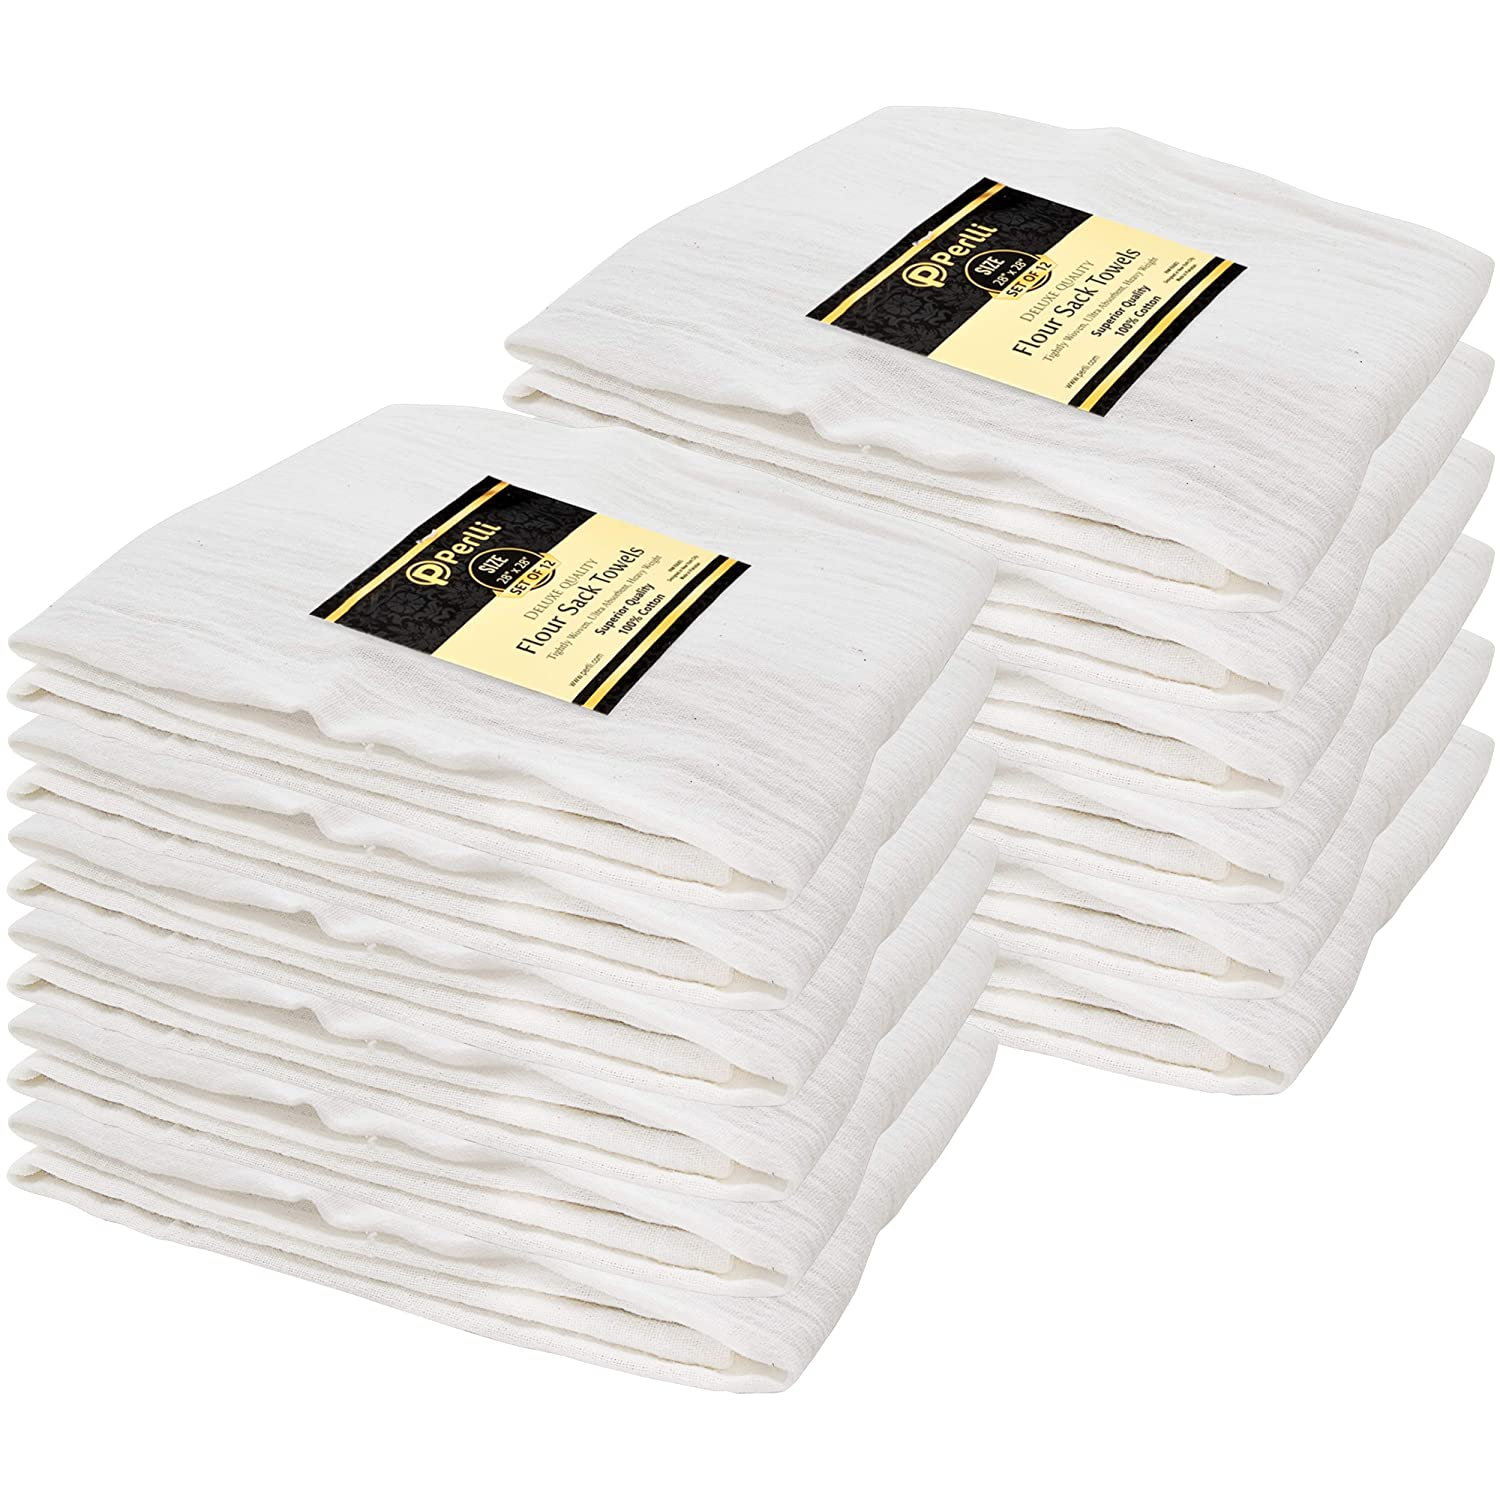 Perlli Flour Sack Towels 12 Pack Bulk 100% Cotton Kitchen White Dish Towels Highly Absorbent Tea Towel Multiple Uses - Embroidery Cloths Dishtowels Bread Basket Drying Hands, Cleaning Lint Free Cloths